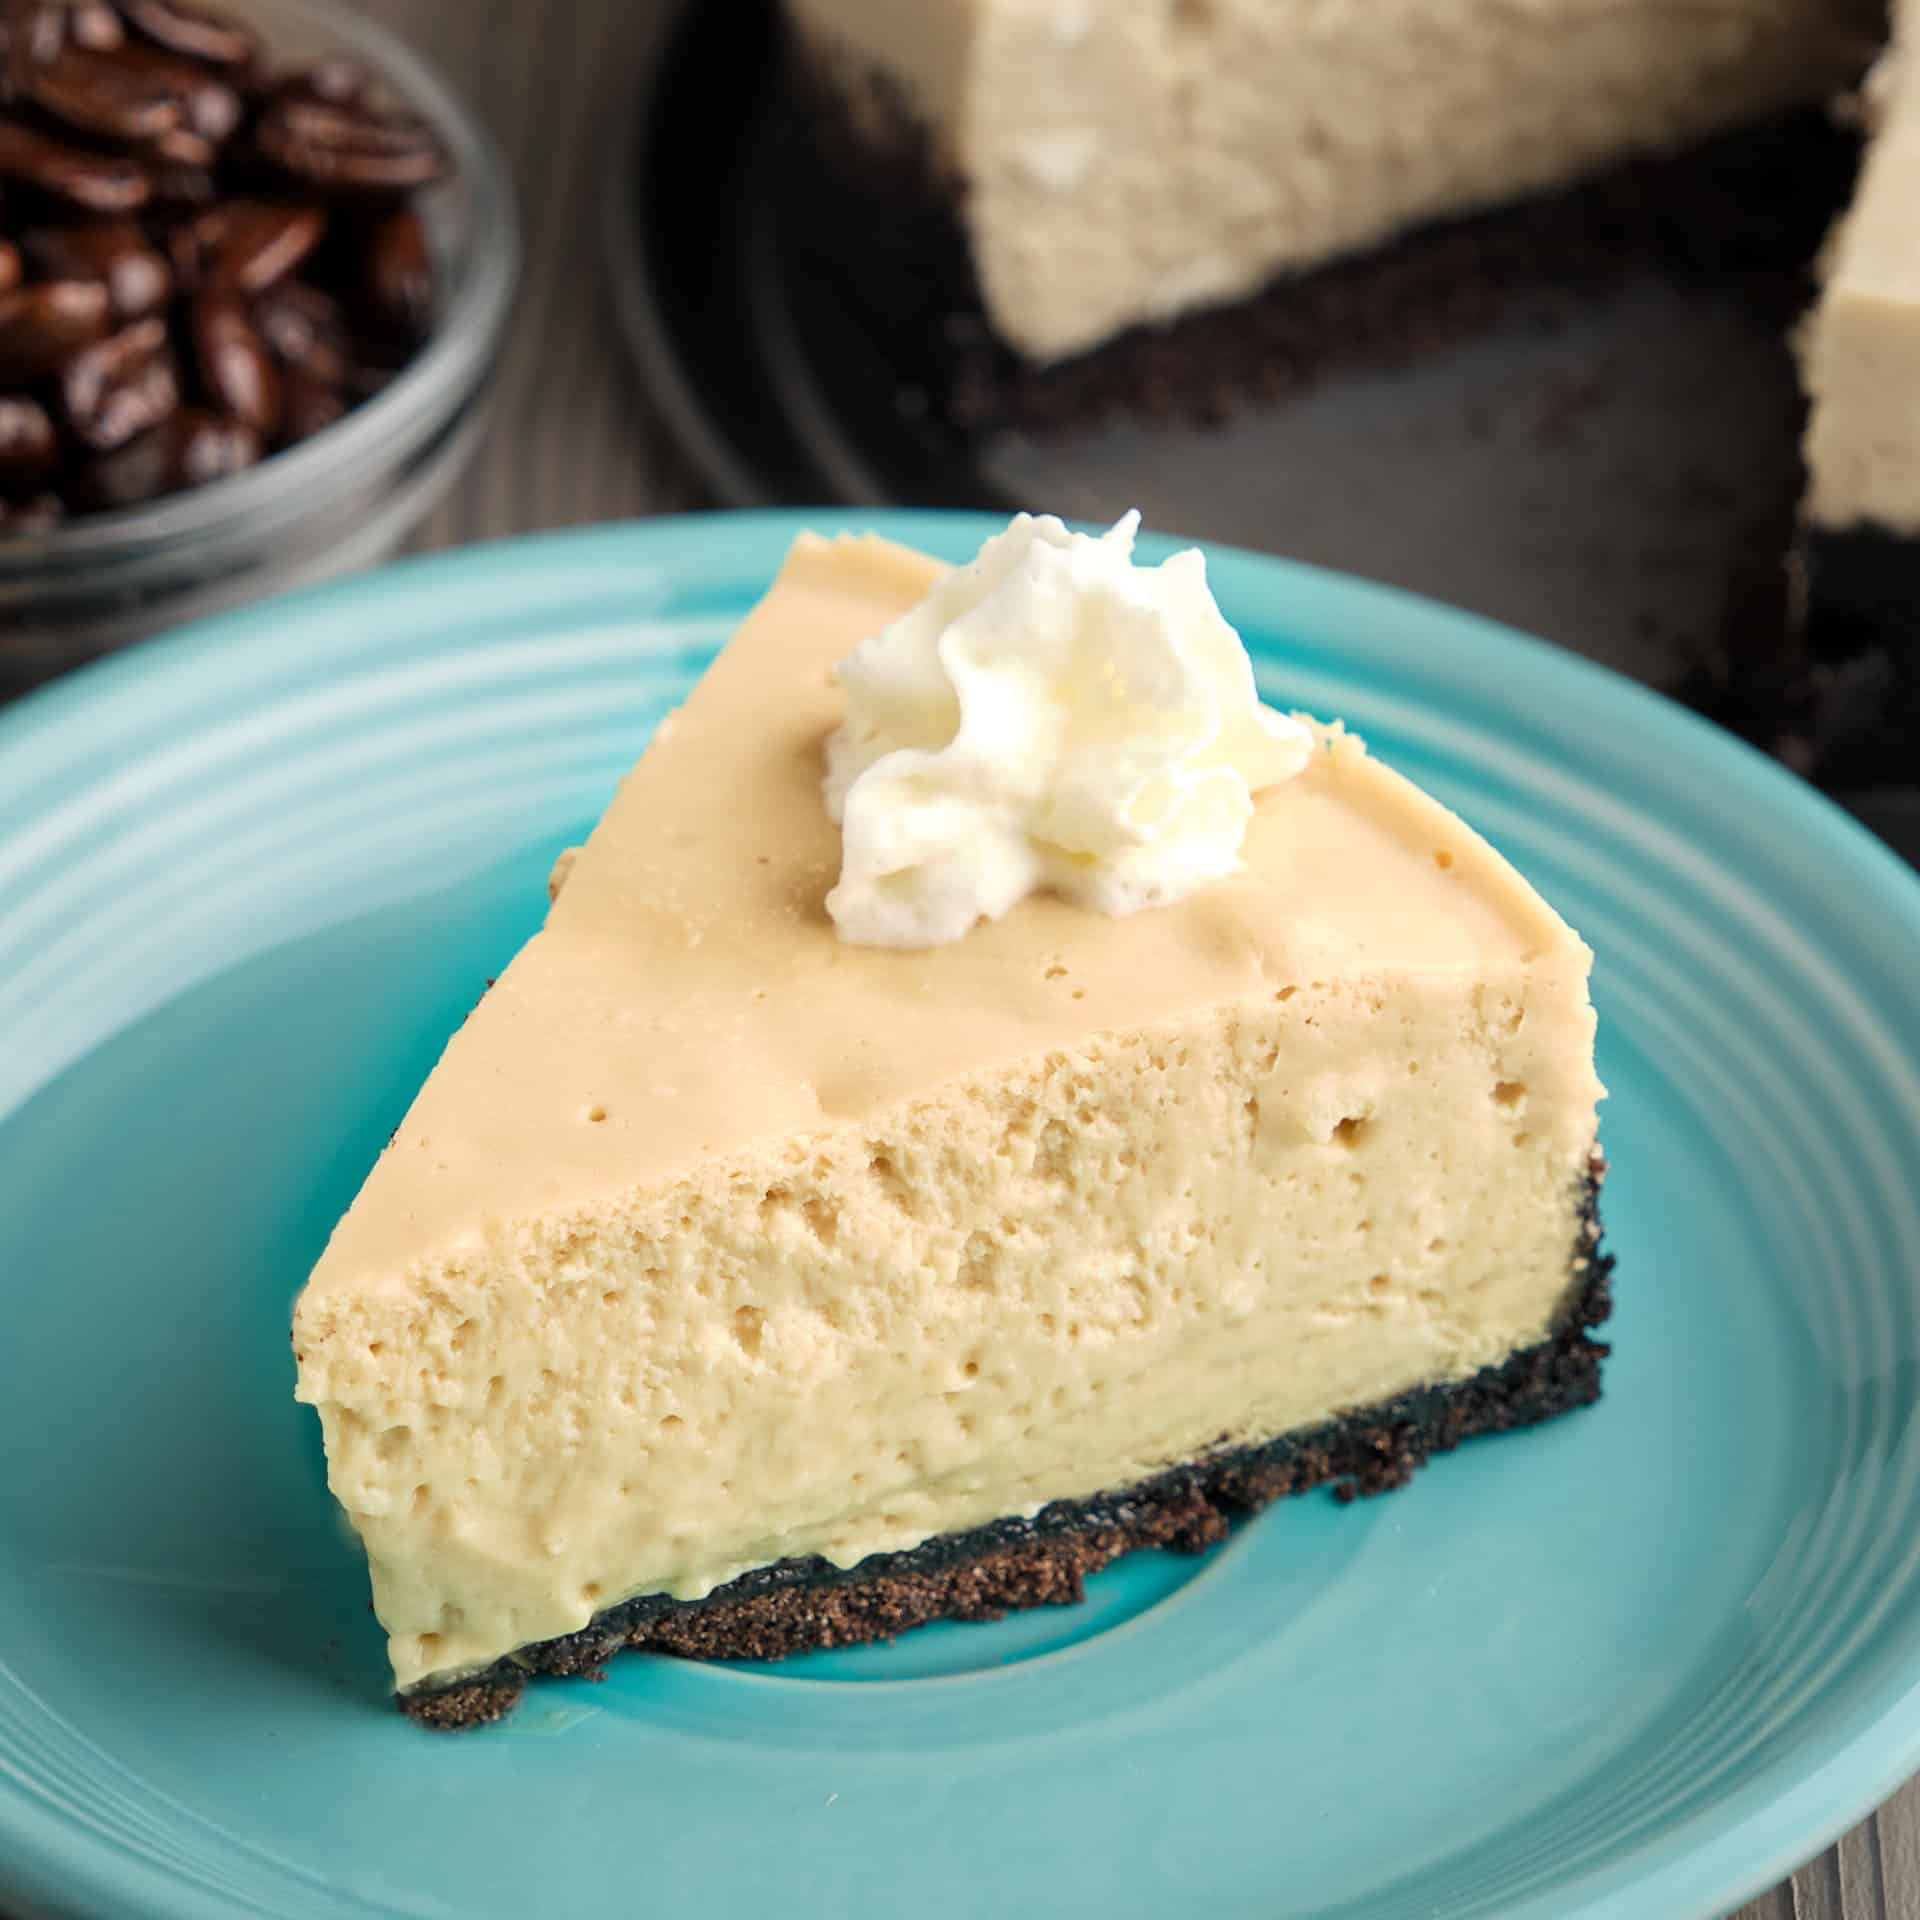 A slice of espresso cheesecake topped with whipped cream